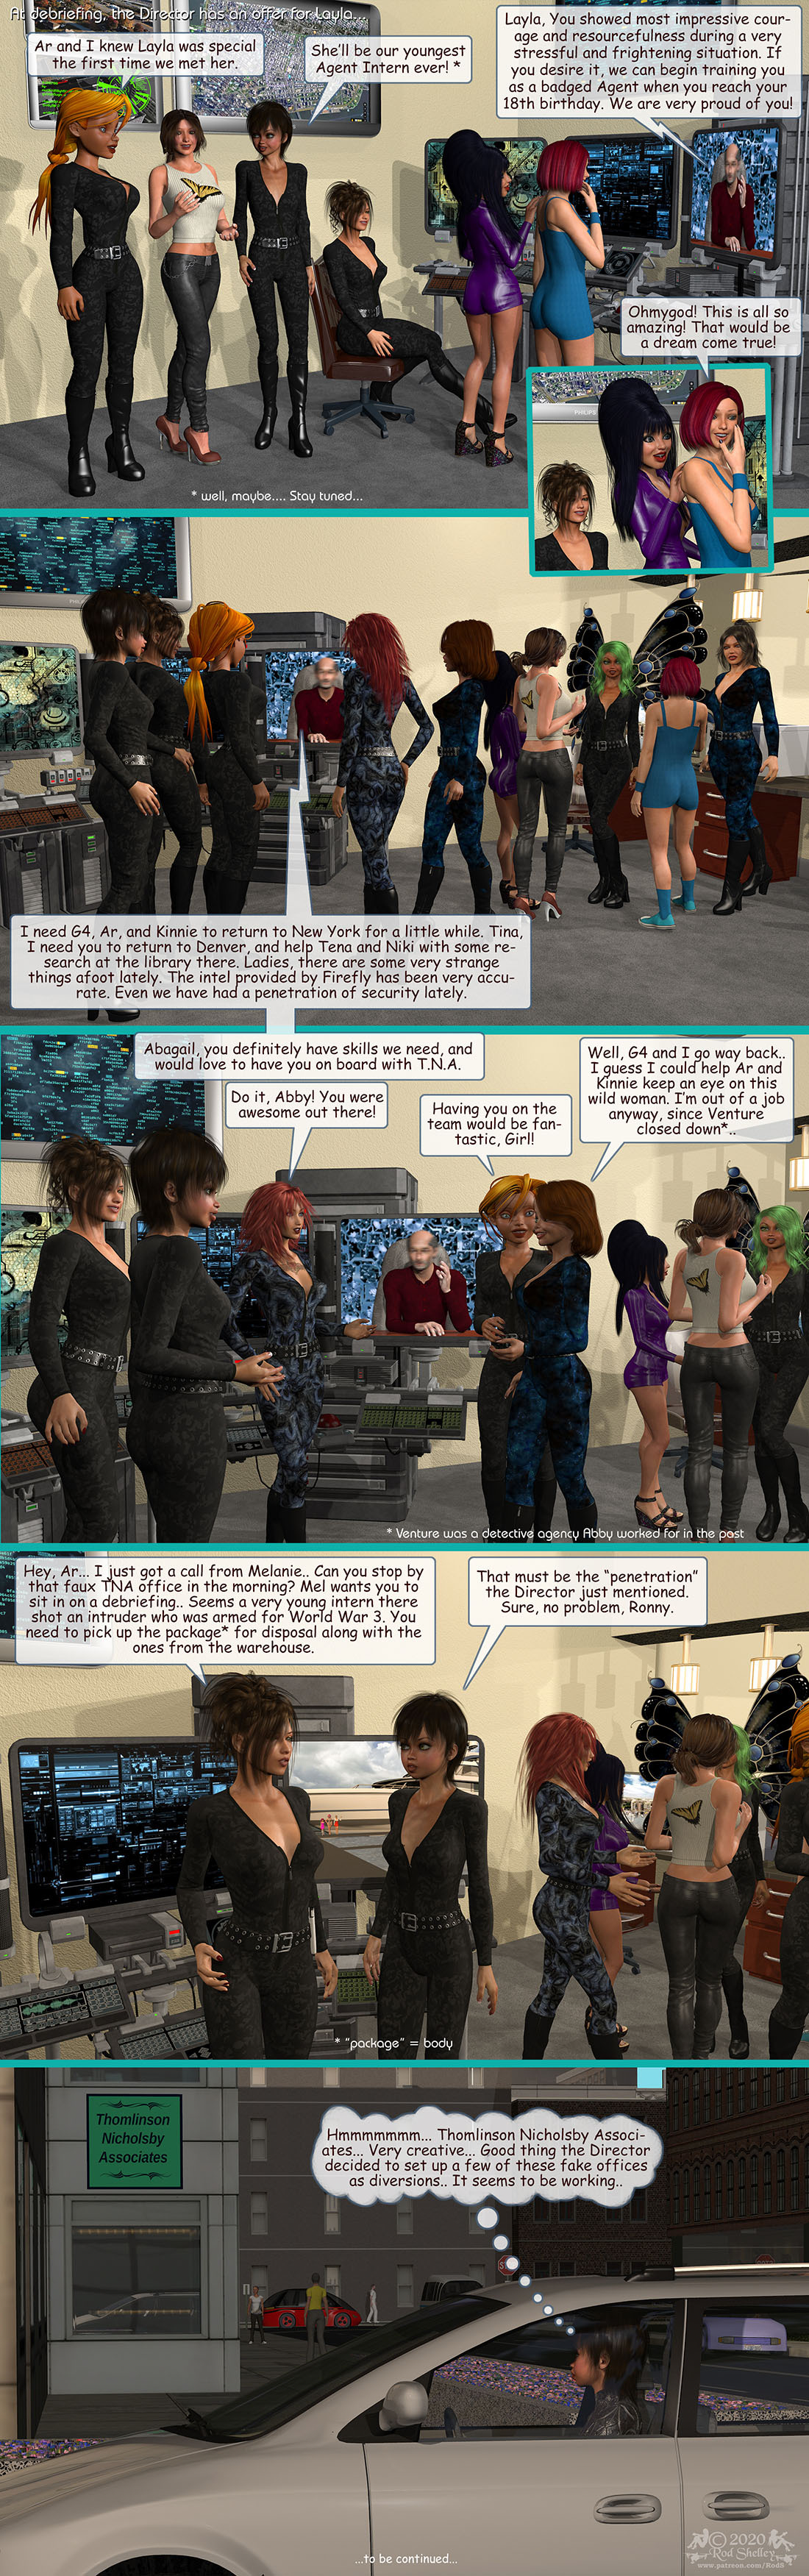 Girls From T.N.A: Breitlenger Jar: Ch 7 Page 20